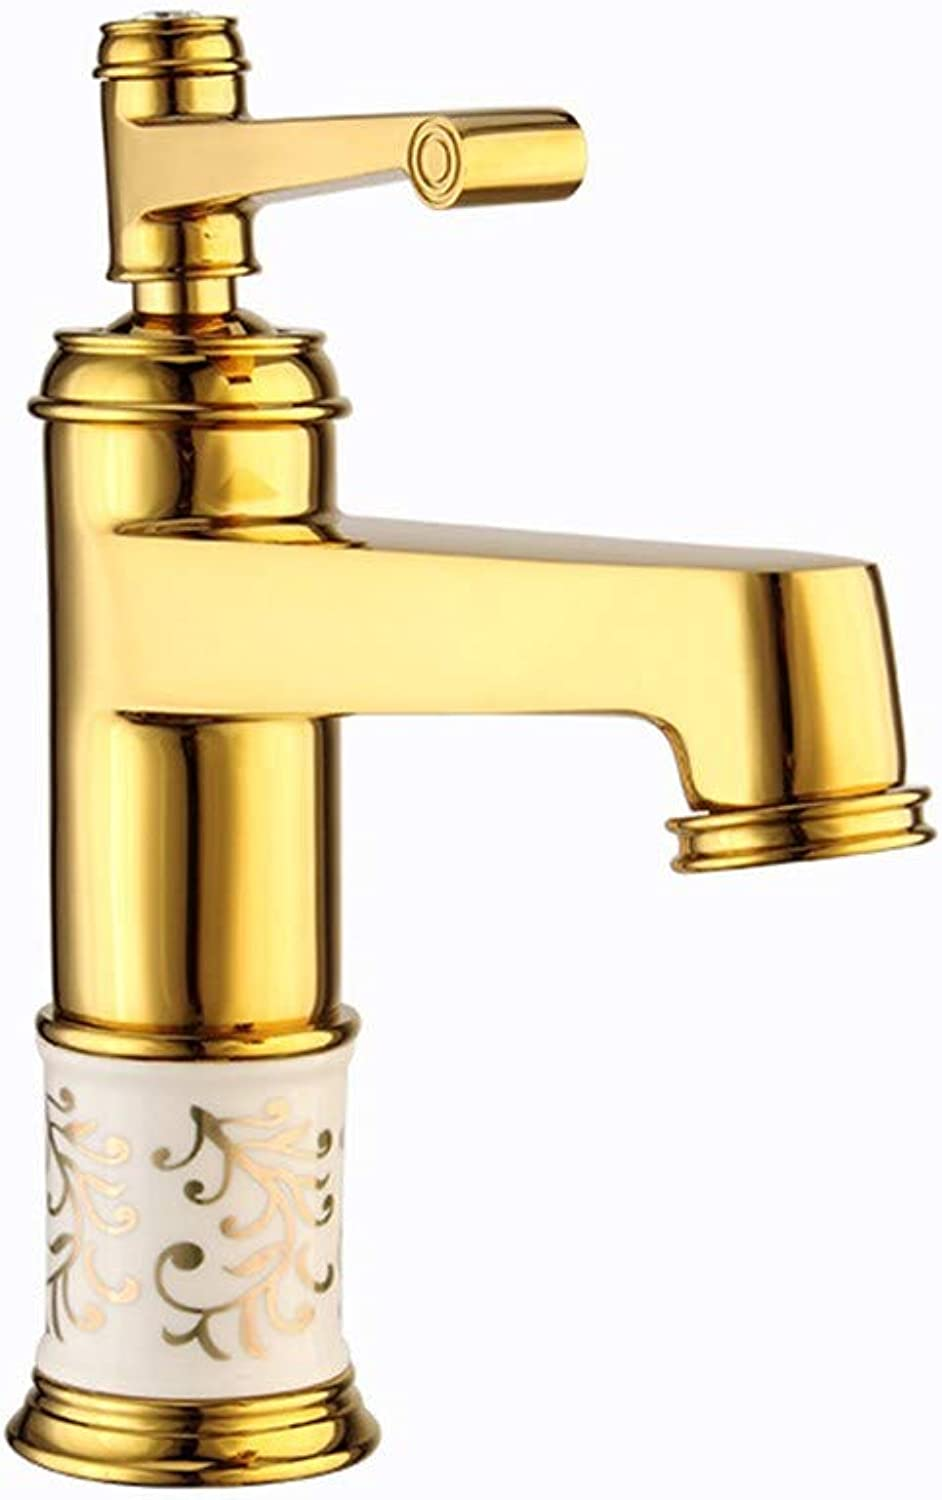 MulFaucet Faucet Water tap Taps Swivel Hoses Copper Ceramic hot and Cold Mixed Water Basin